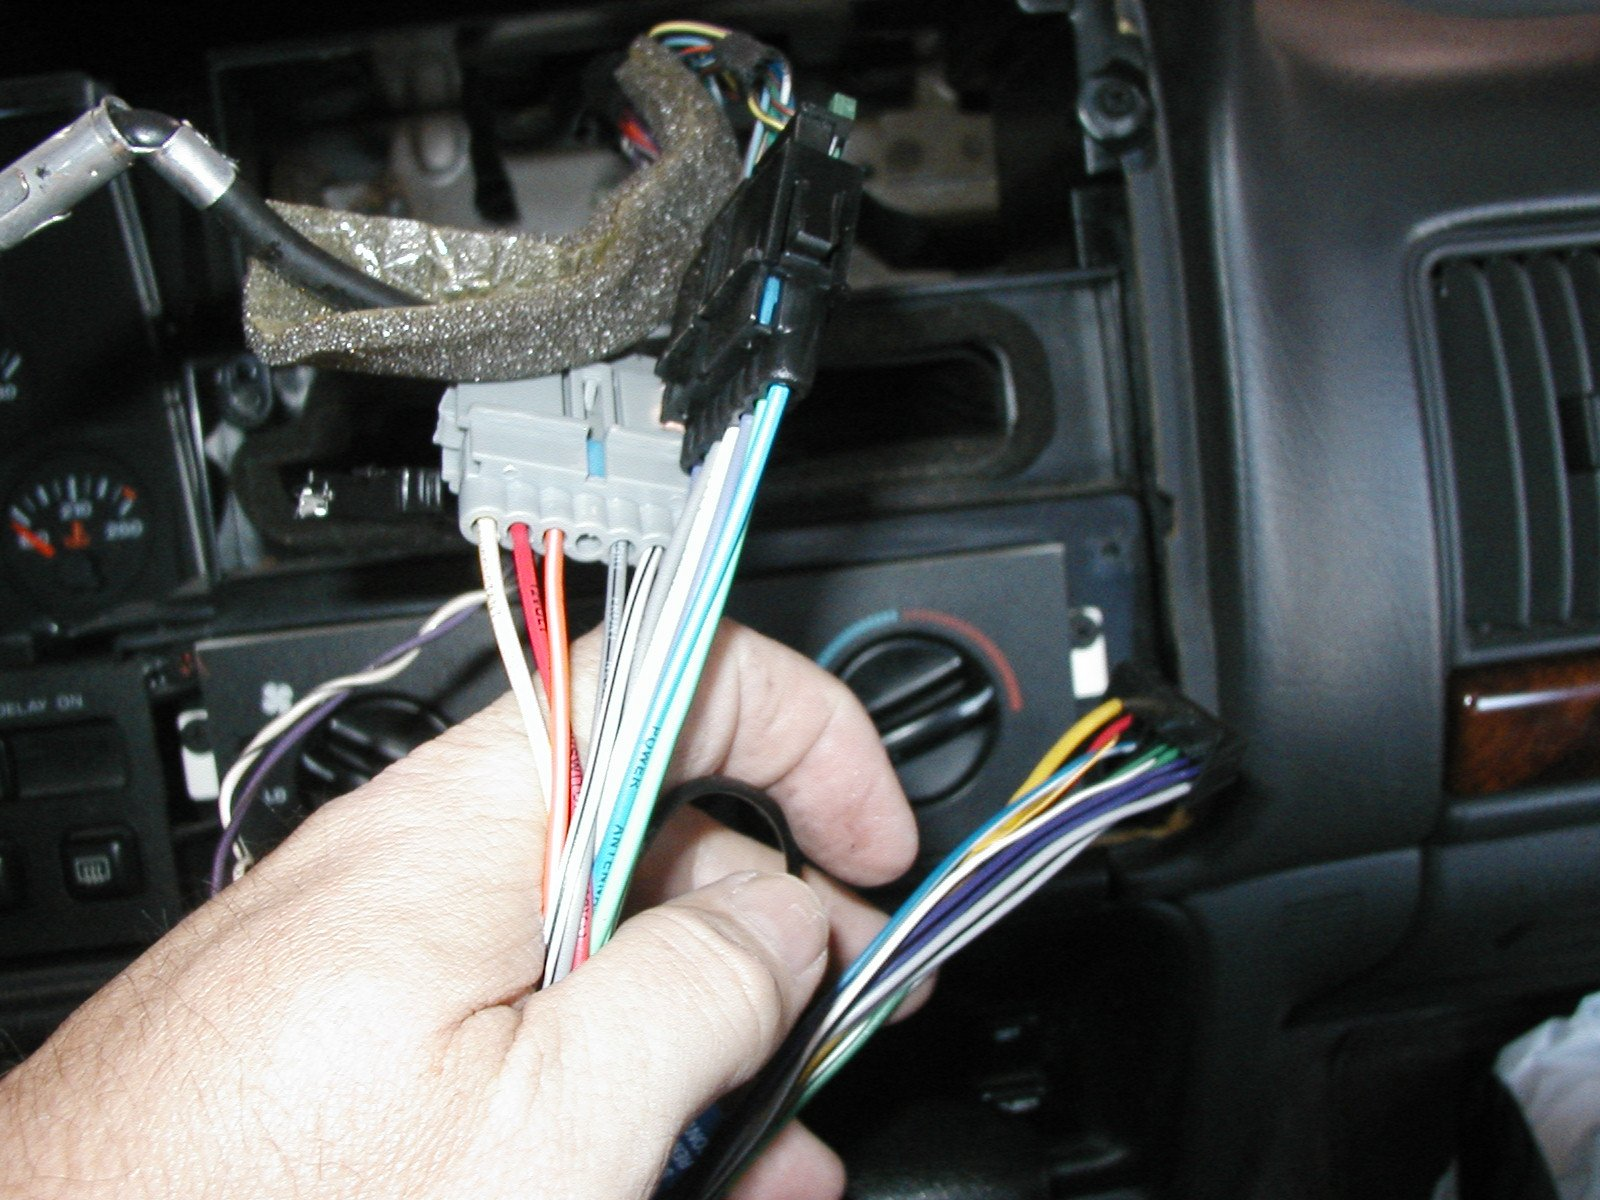 1996 Jeep Cherokee Installation Parts, harness, wires ...